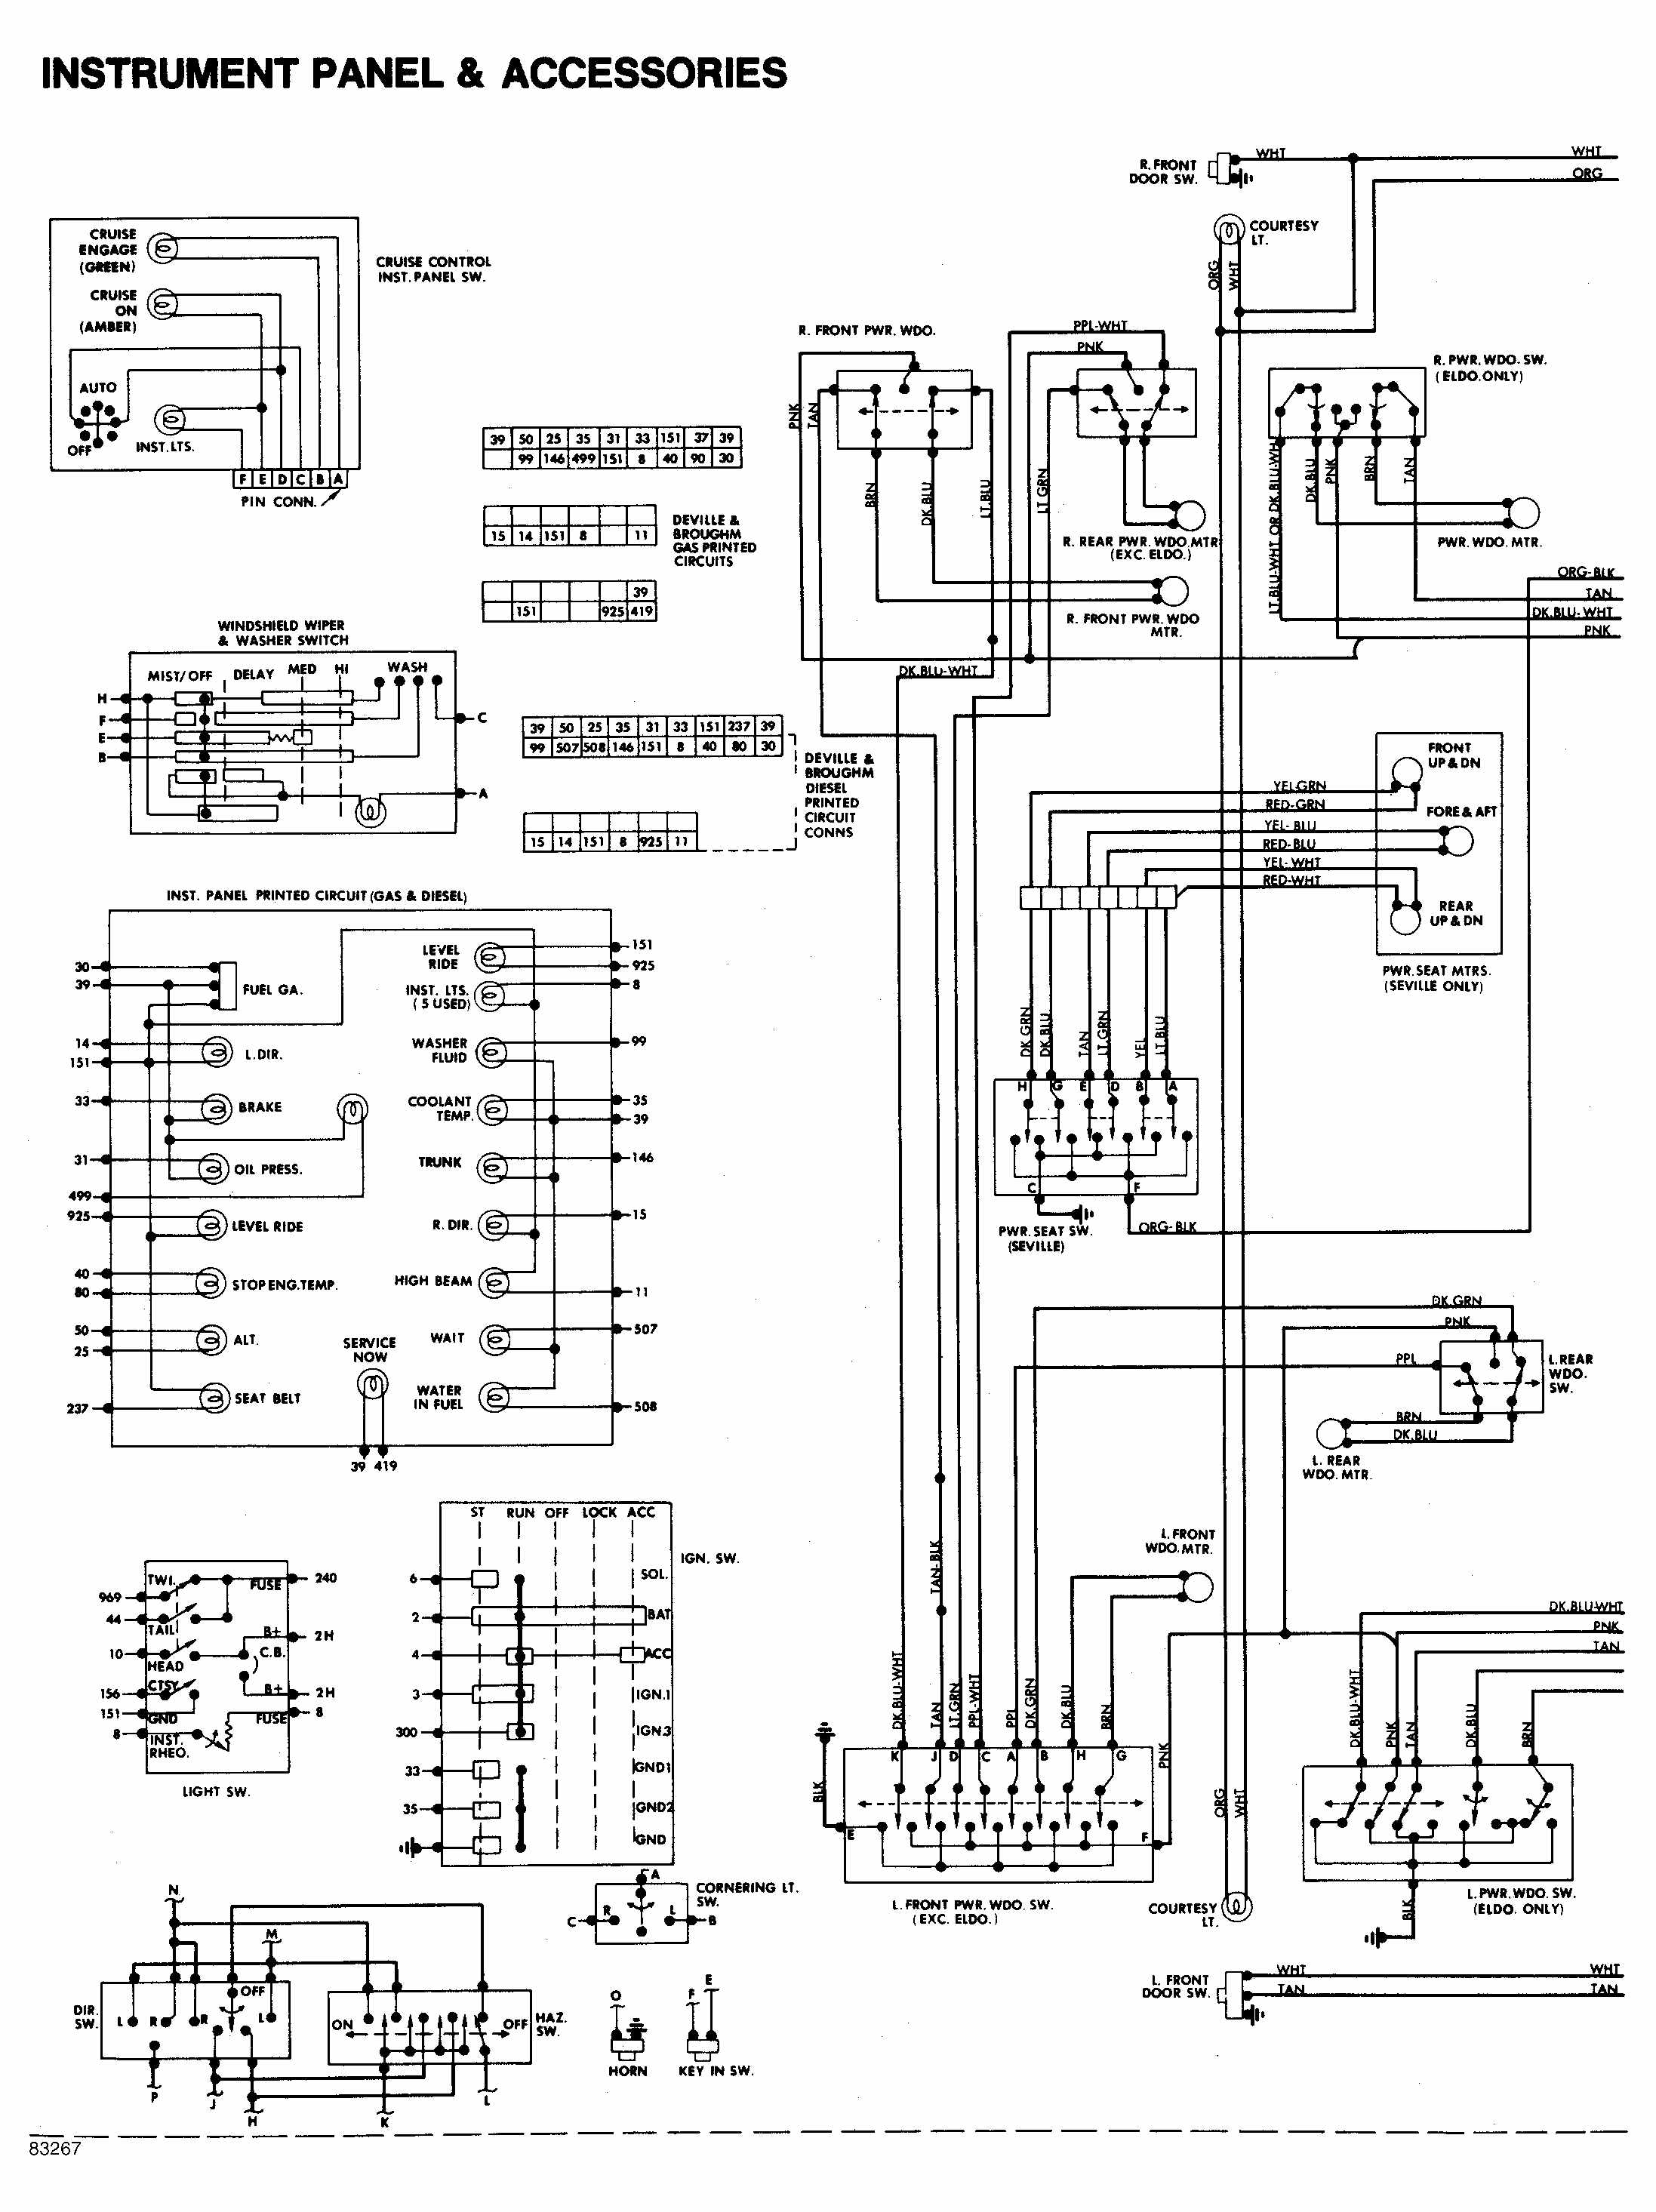 1998 Cadillac Deville Radio Wiring Diagram - Wiring Diagram Text dive-check  - dive-check.albergoristorantecanzo.it | 1998 Cadillac Eldorado Wiring Diagram |  | dive-check.albergoristorantecanzo.it